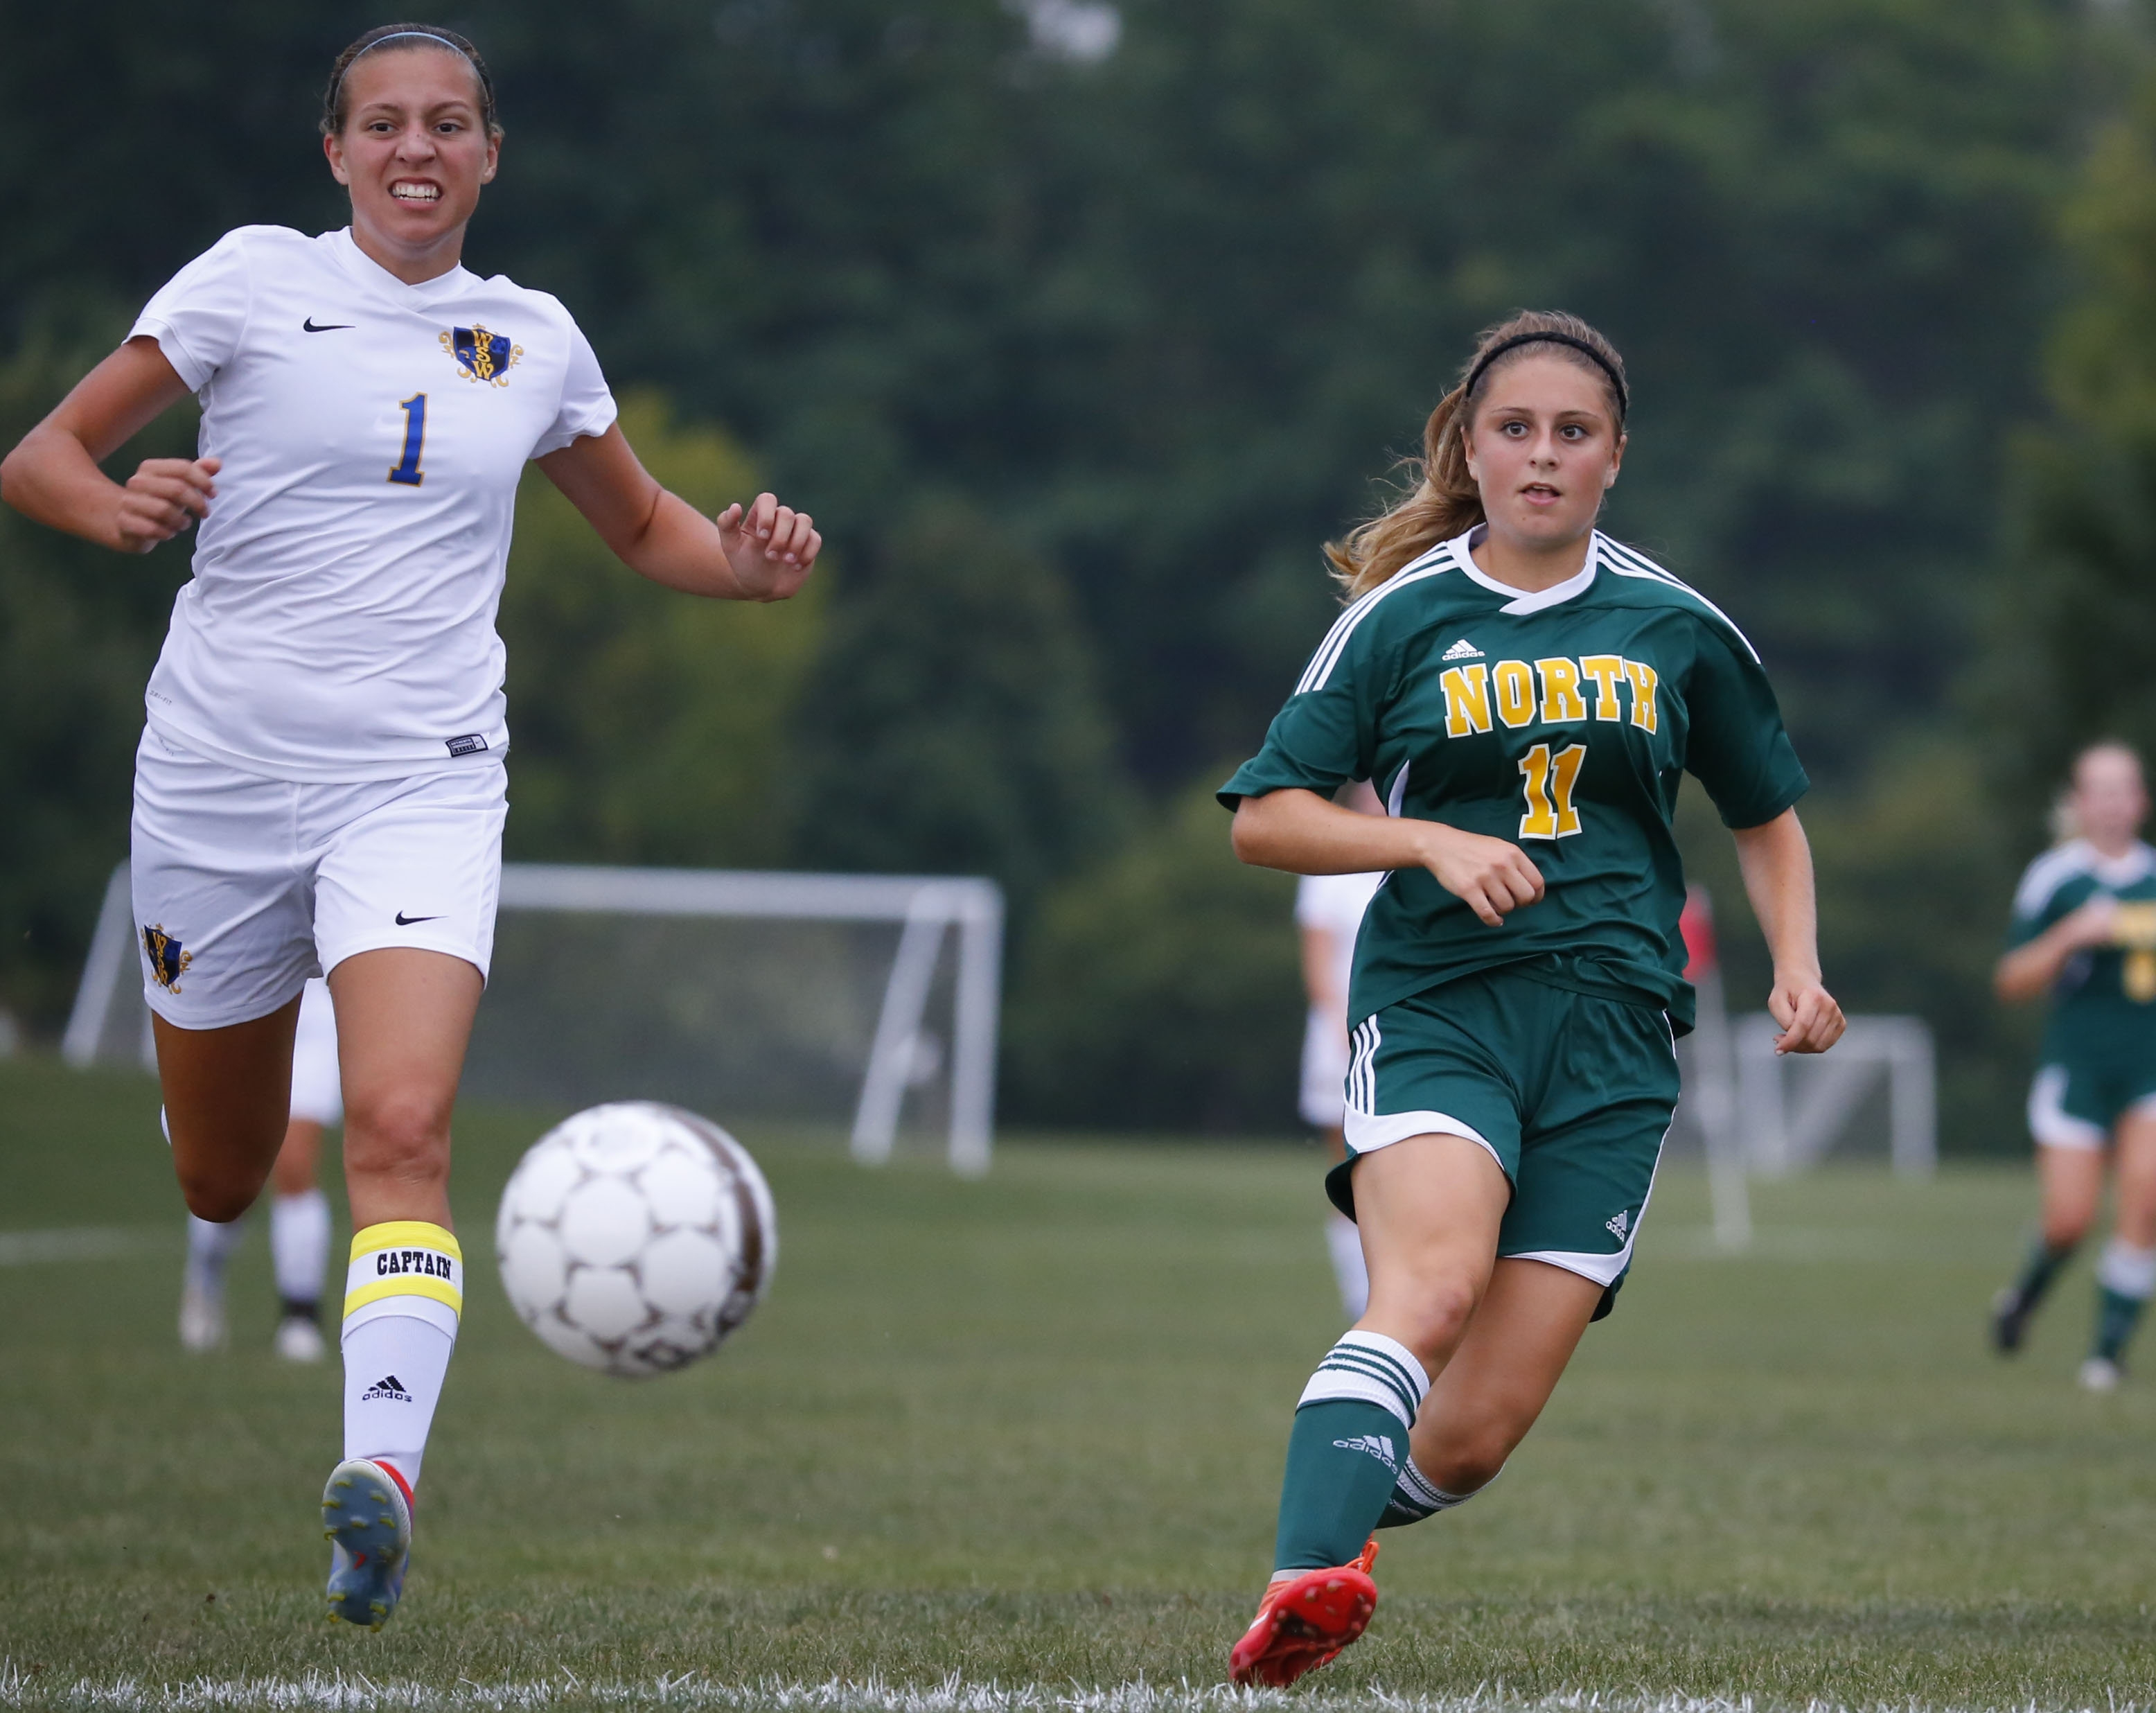 Williamsville North's Samantha Diamond beat West Seneca West's Paige Cocina for a first-half goal.